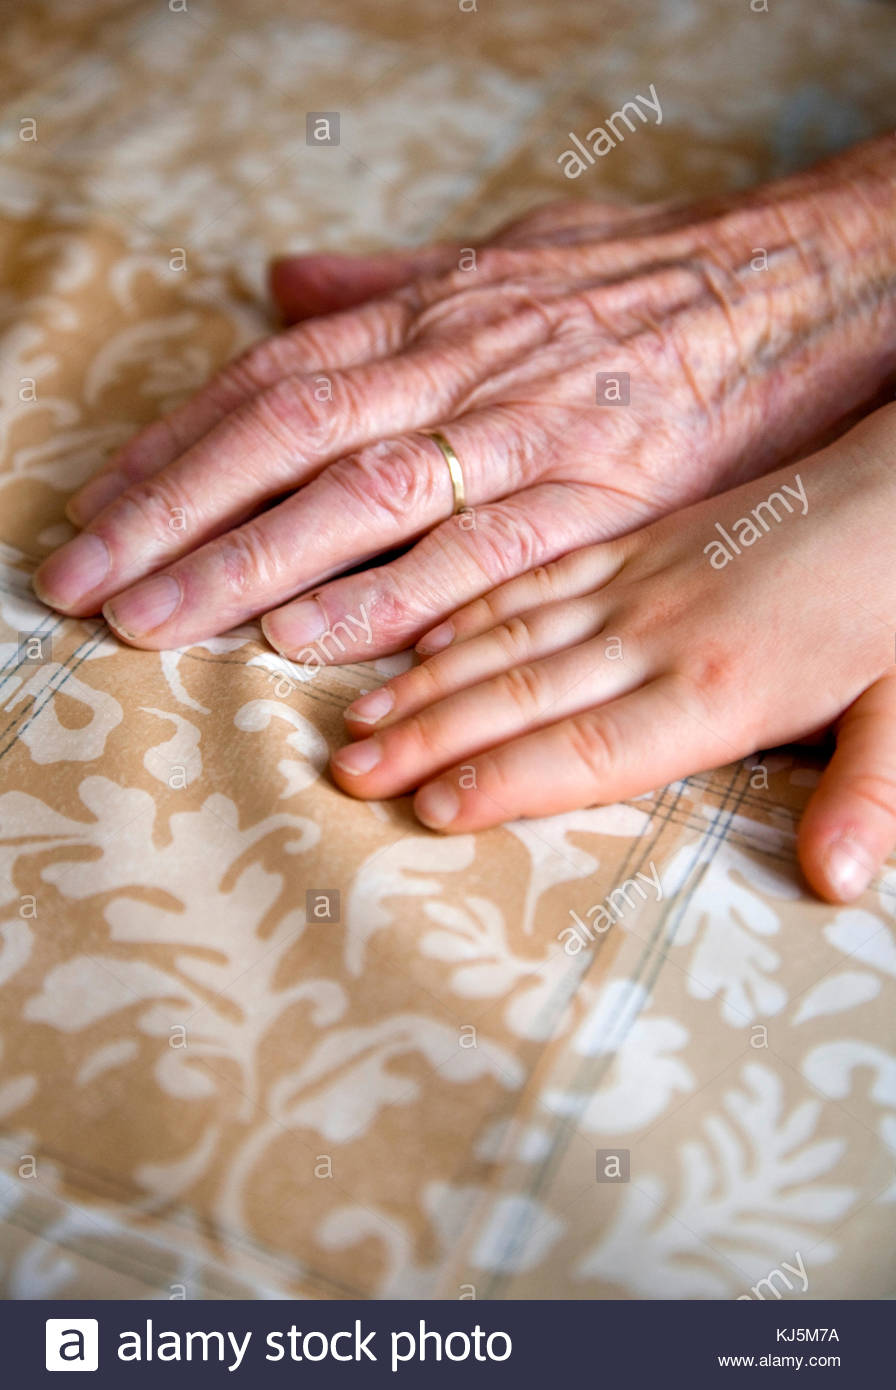 Contrast between old and young hand. Generations - Stock Image